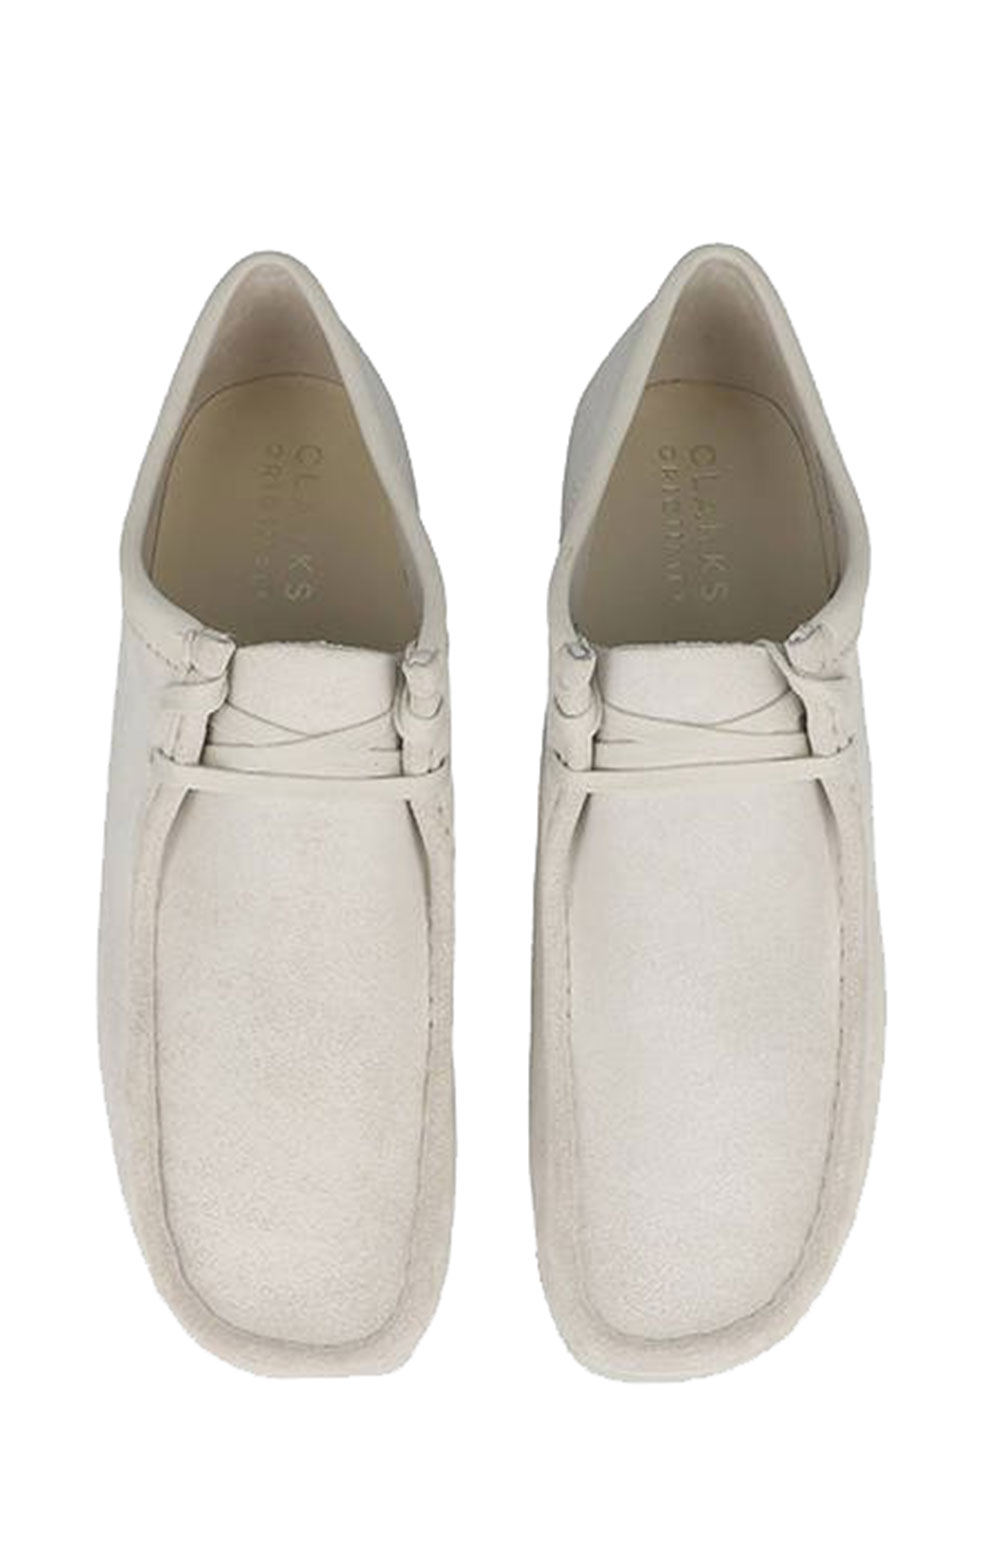 (26158421) Wallabee Shoes - White Suede 4